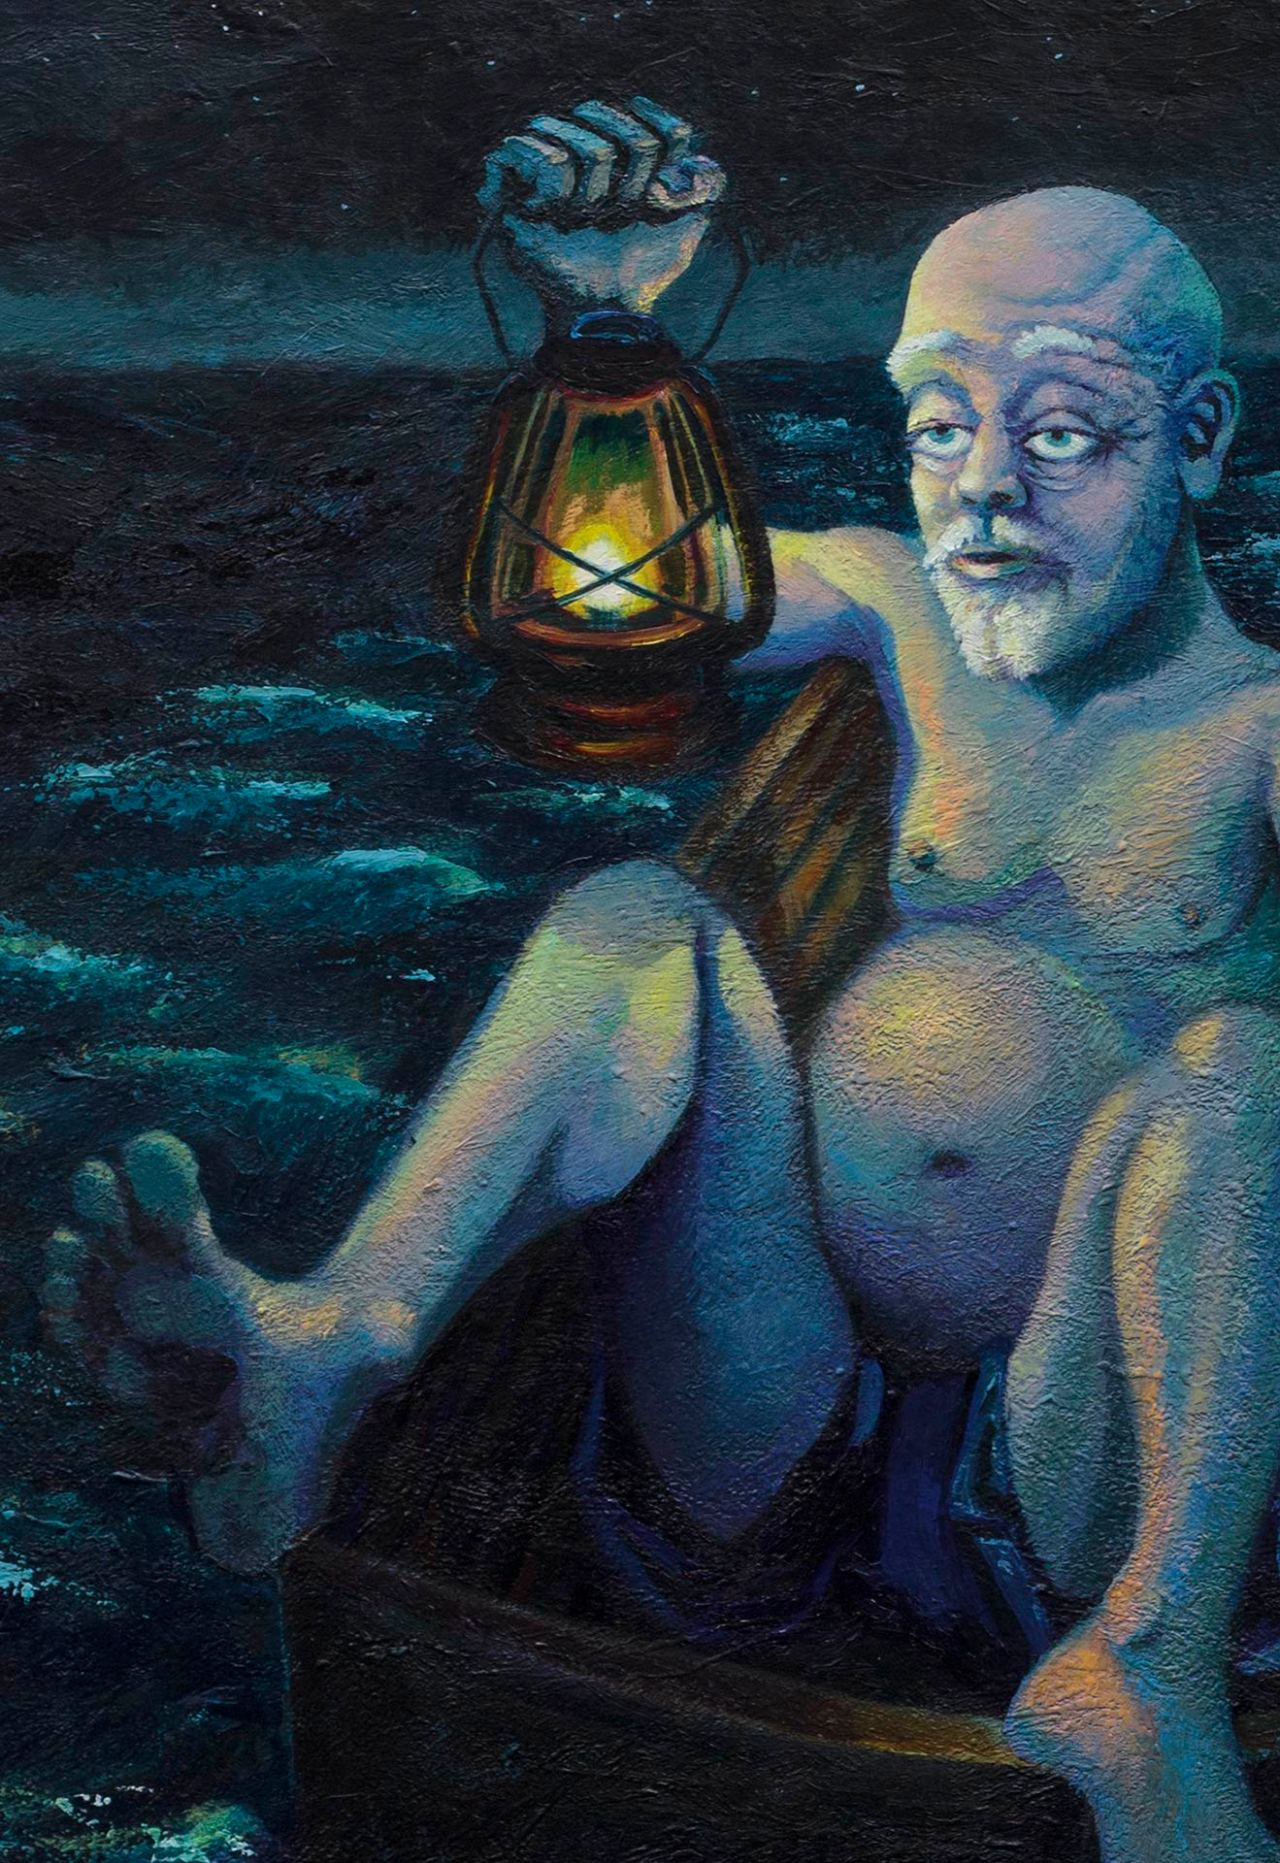 """Detail of a painting by Steve Miller titled Fat Man Little Boat, 34"""" x 50"""", acrylic on canvas, completed 10/1/14 © Steve Miller 2014"""